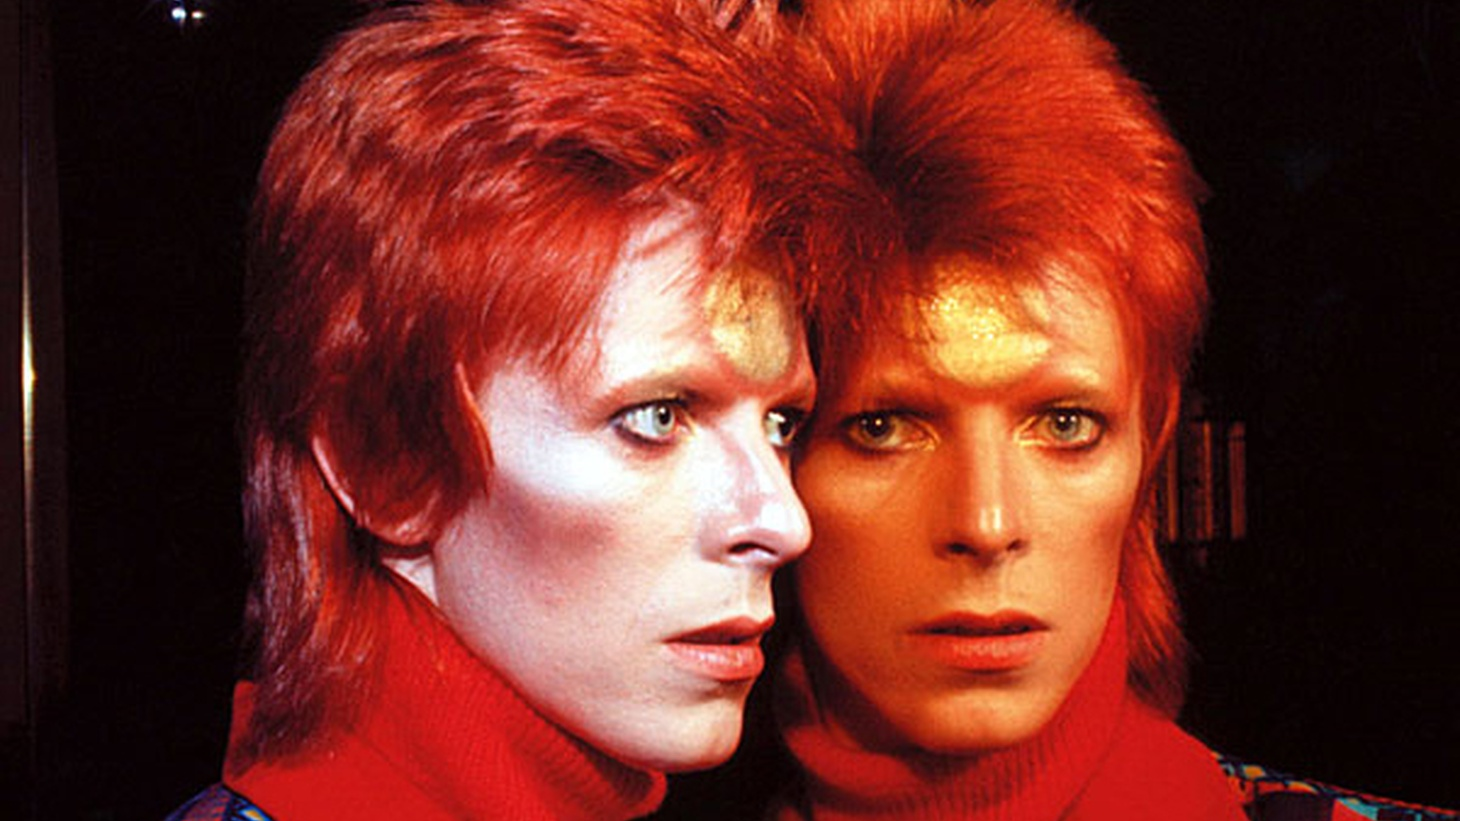 Travis pays tribute to the incredible life and work of David Bowie.